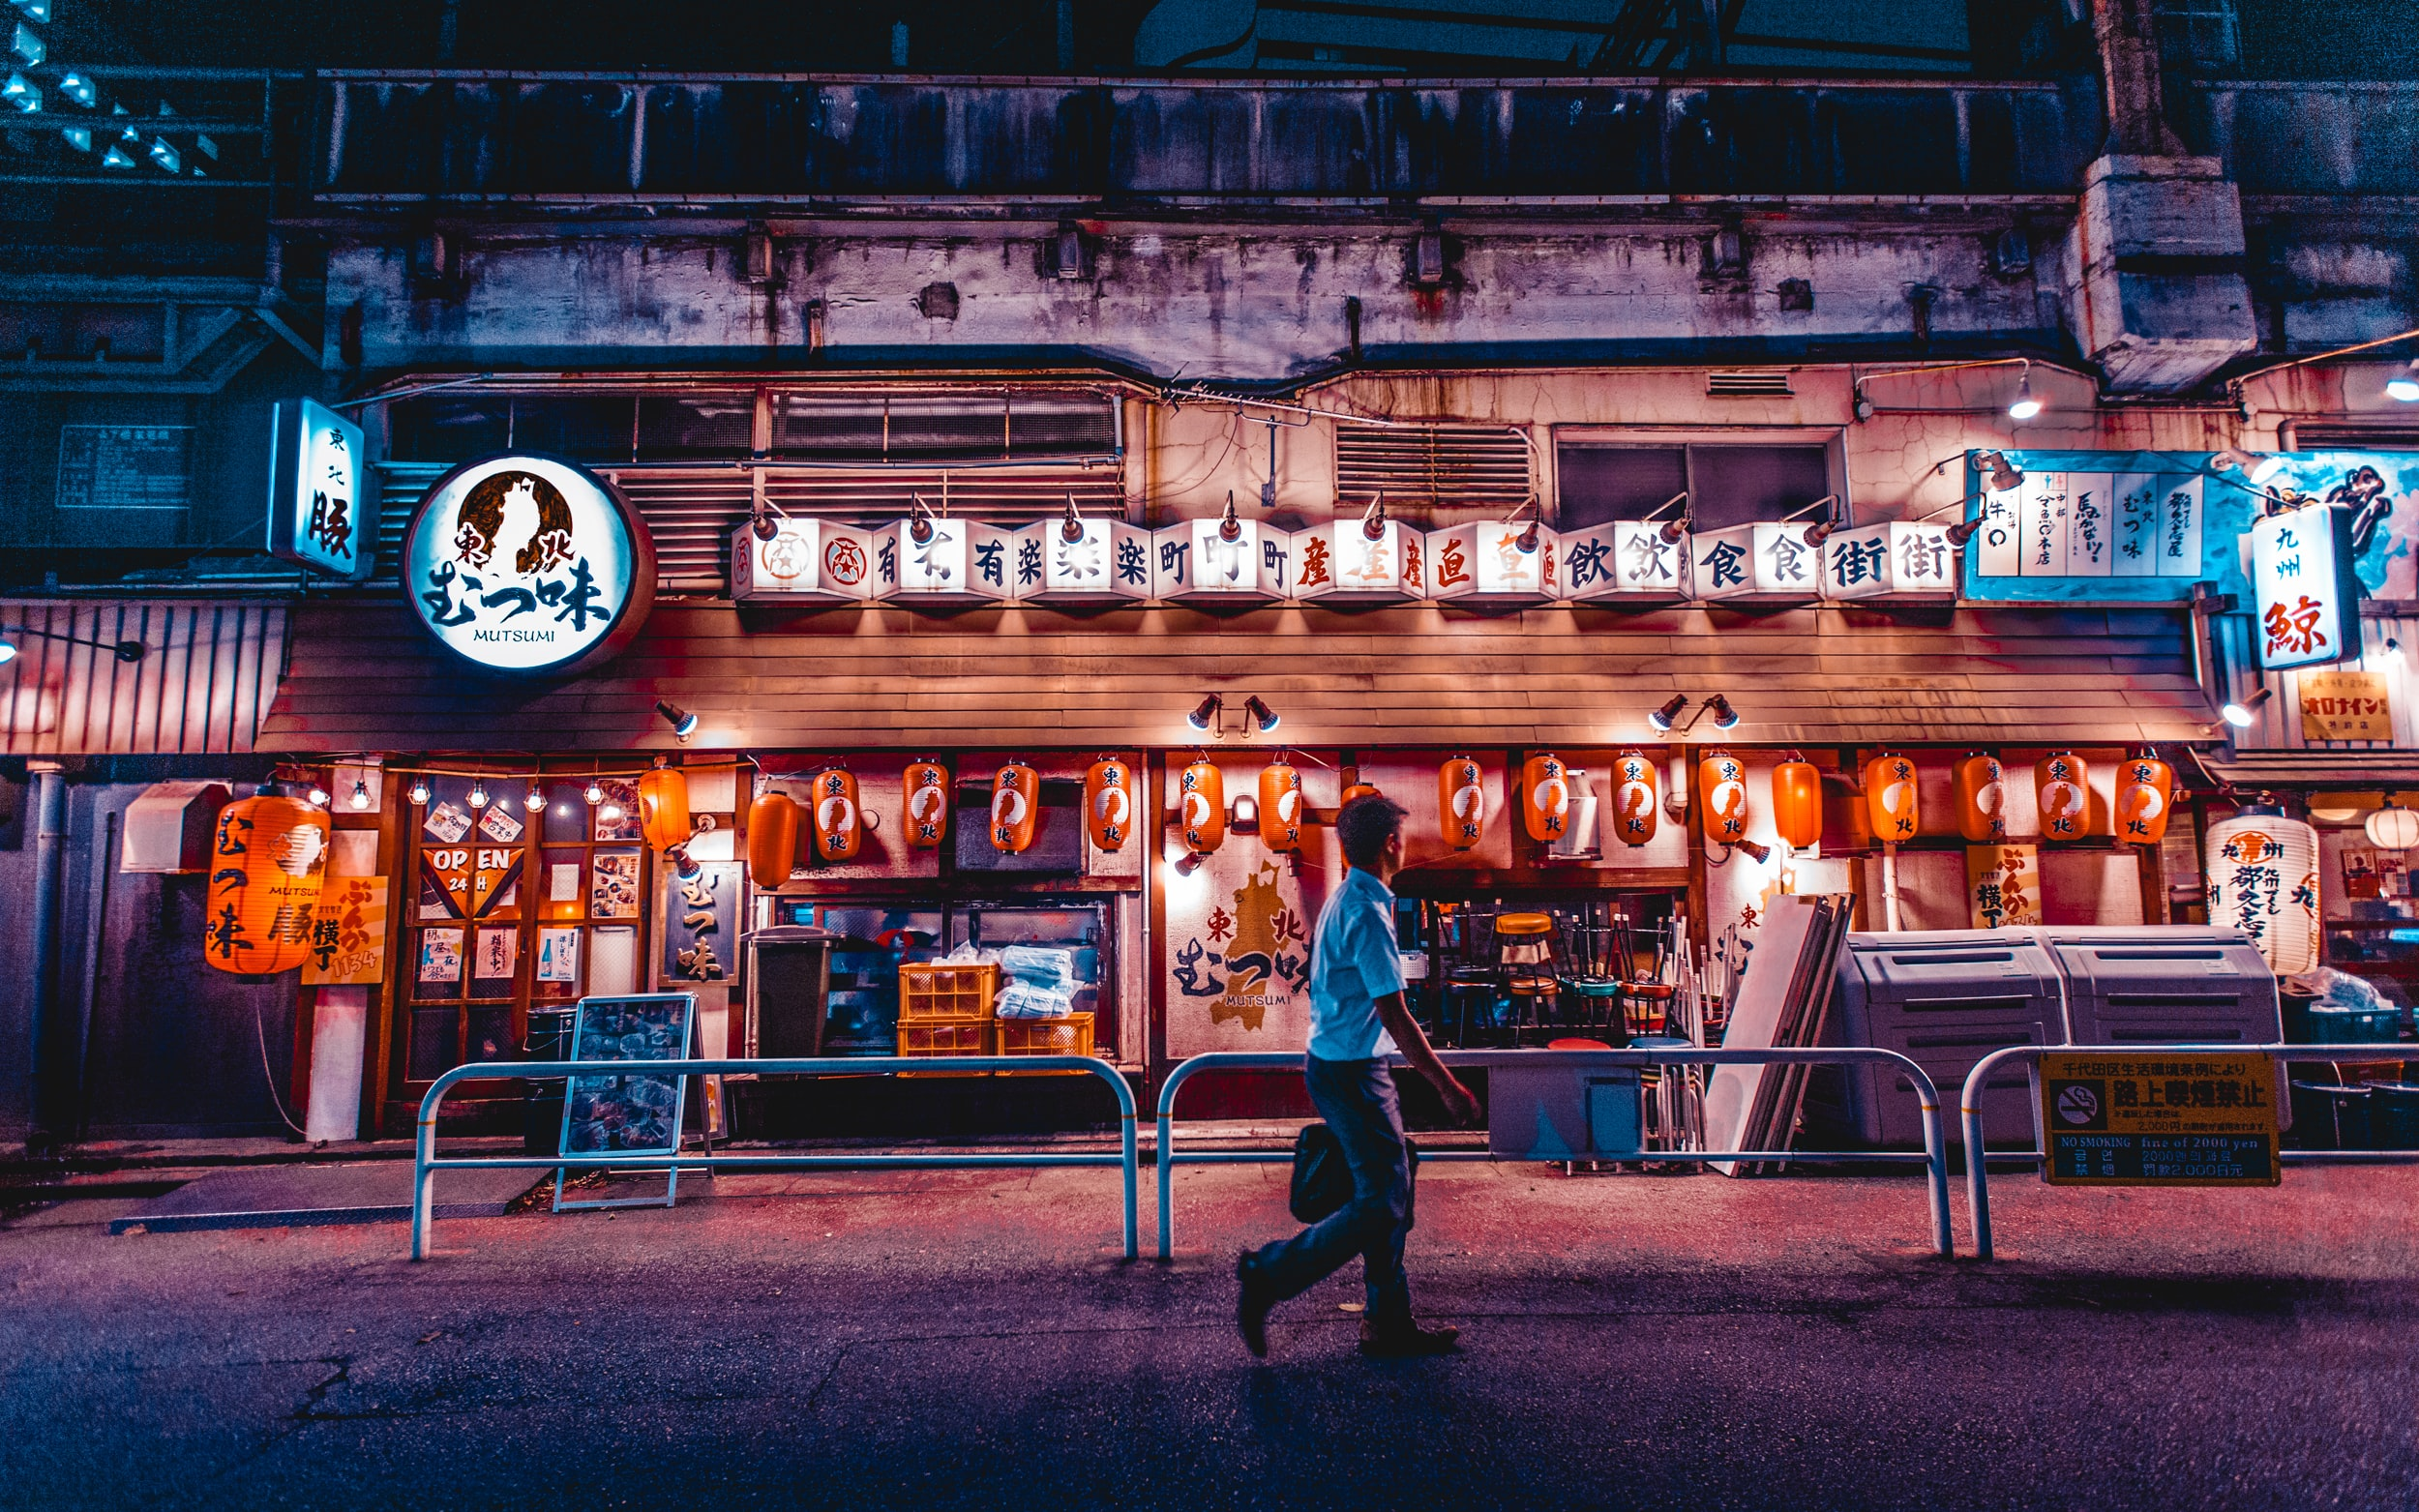 A lone man walking past a restaurant storefront in Tokyo at night